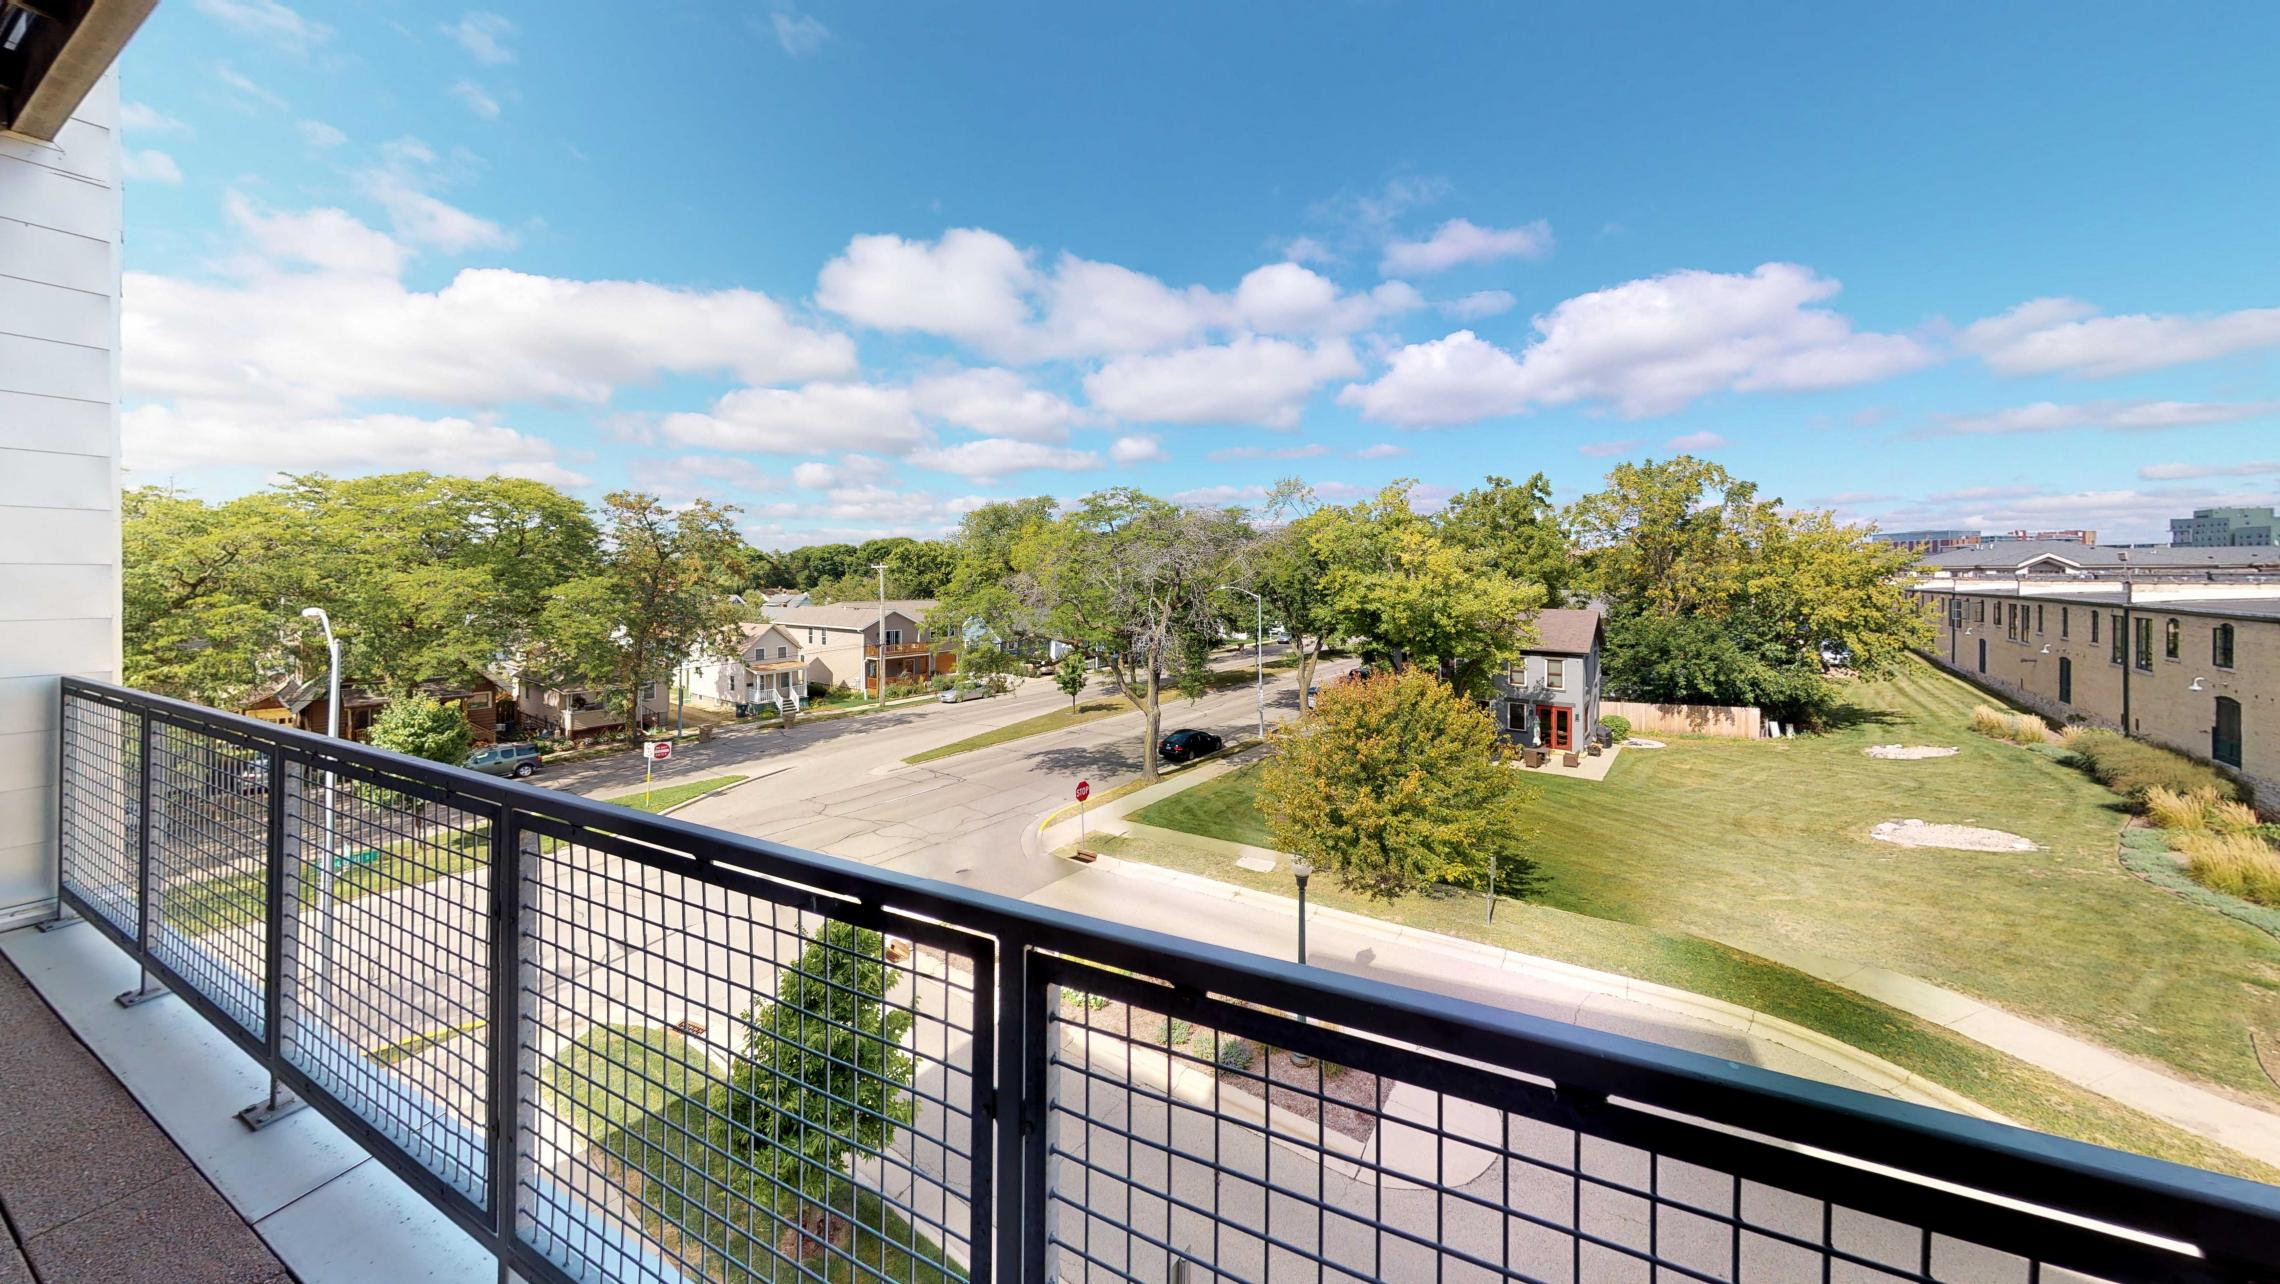 SEVEN27-Apartment-312-one-bedroom-modern-downtown-Madison-city-view-upscale.jpg